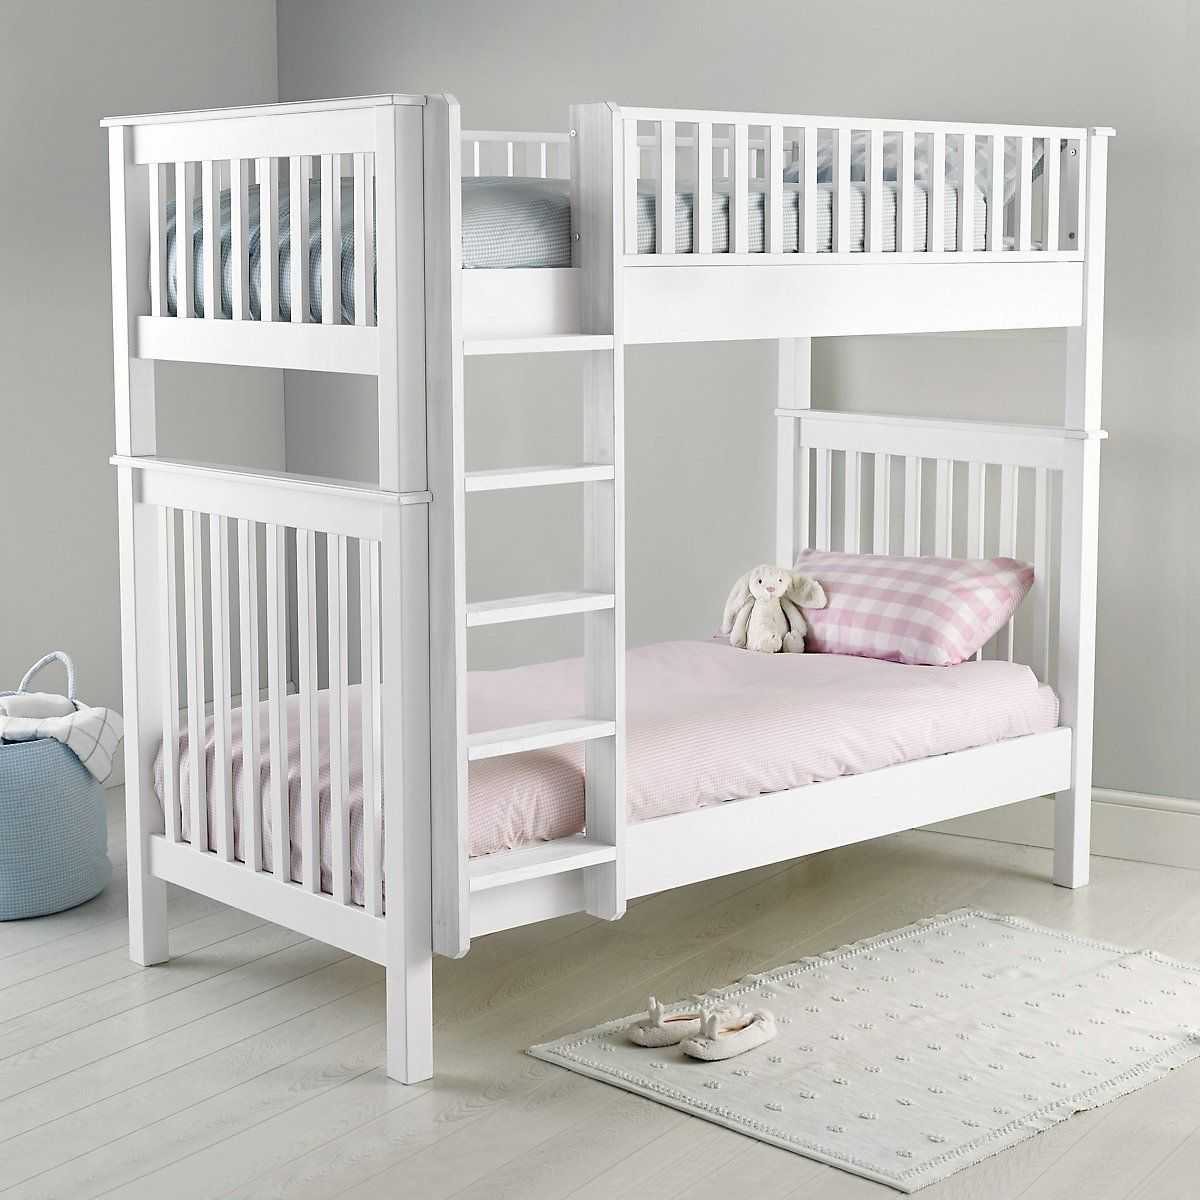 Classic Convertible Bunk Bed Beds The White Company